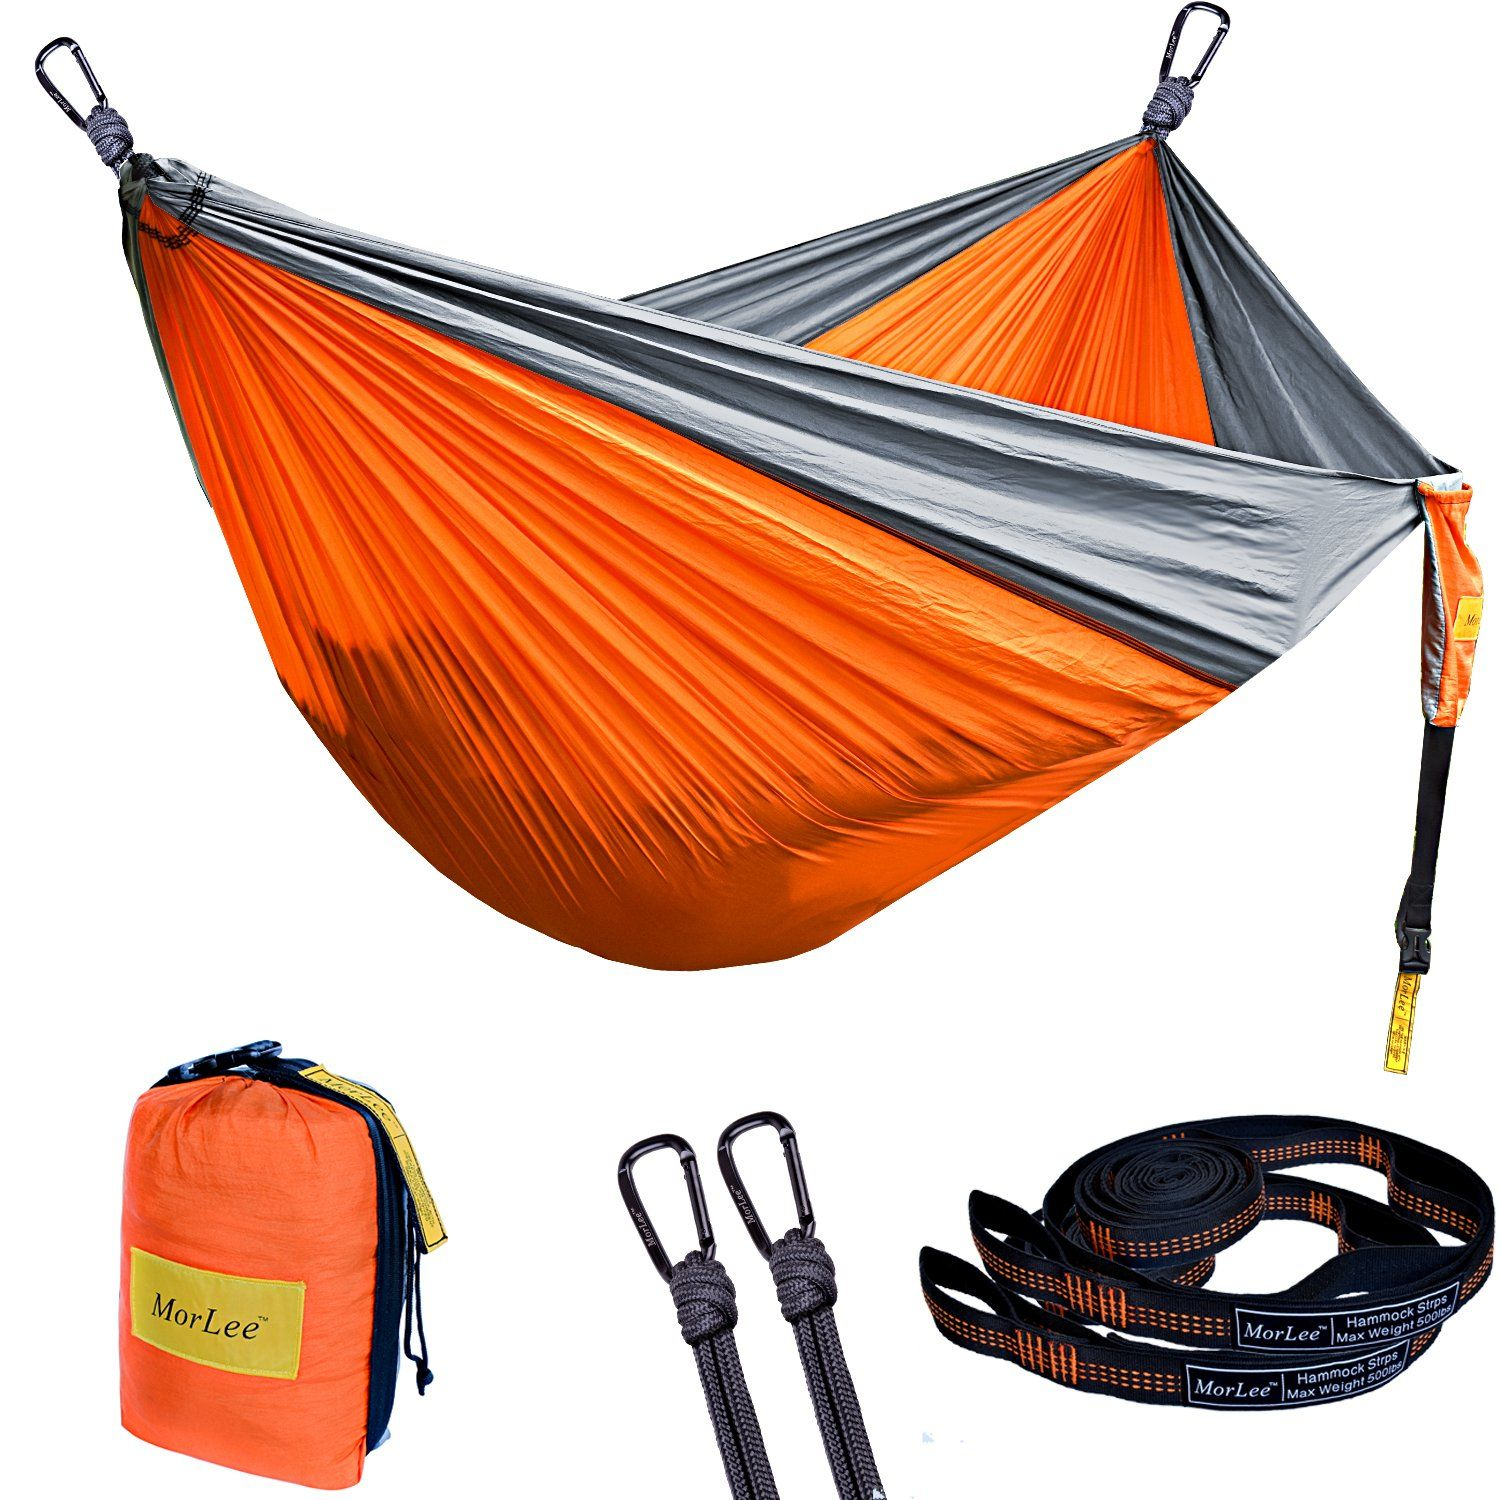 straps camping compression holds lbs loop lightweight travel for purple that strap product person set wiregate carabiners tree automotive aluminum double hammocks two ideal portable edges hammock best